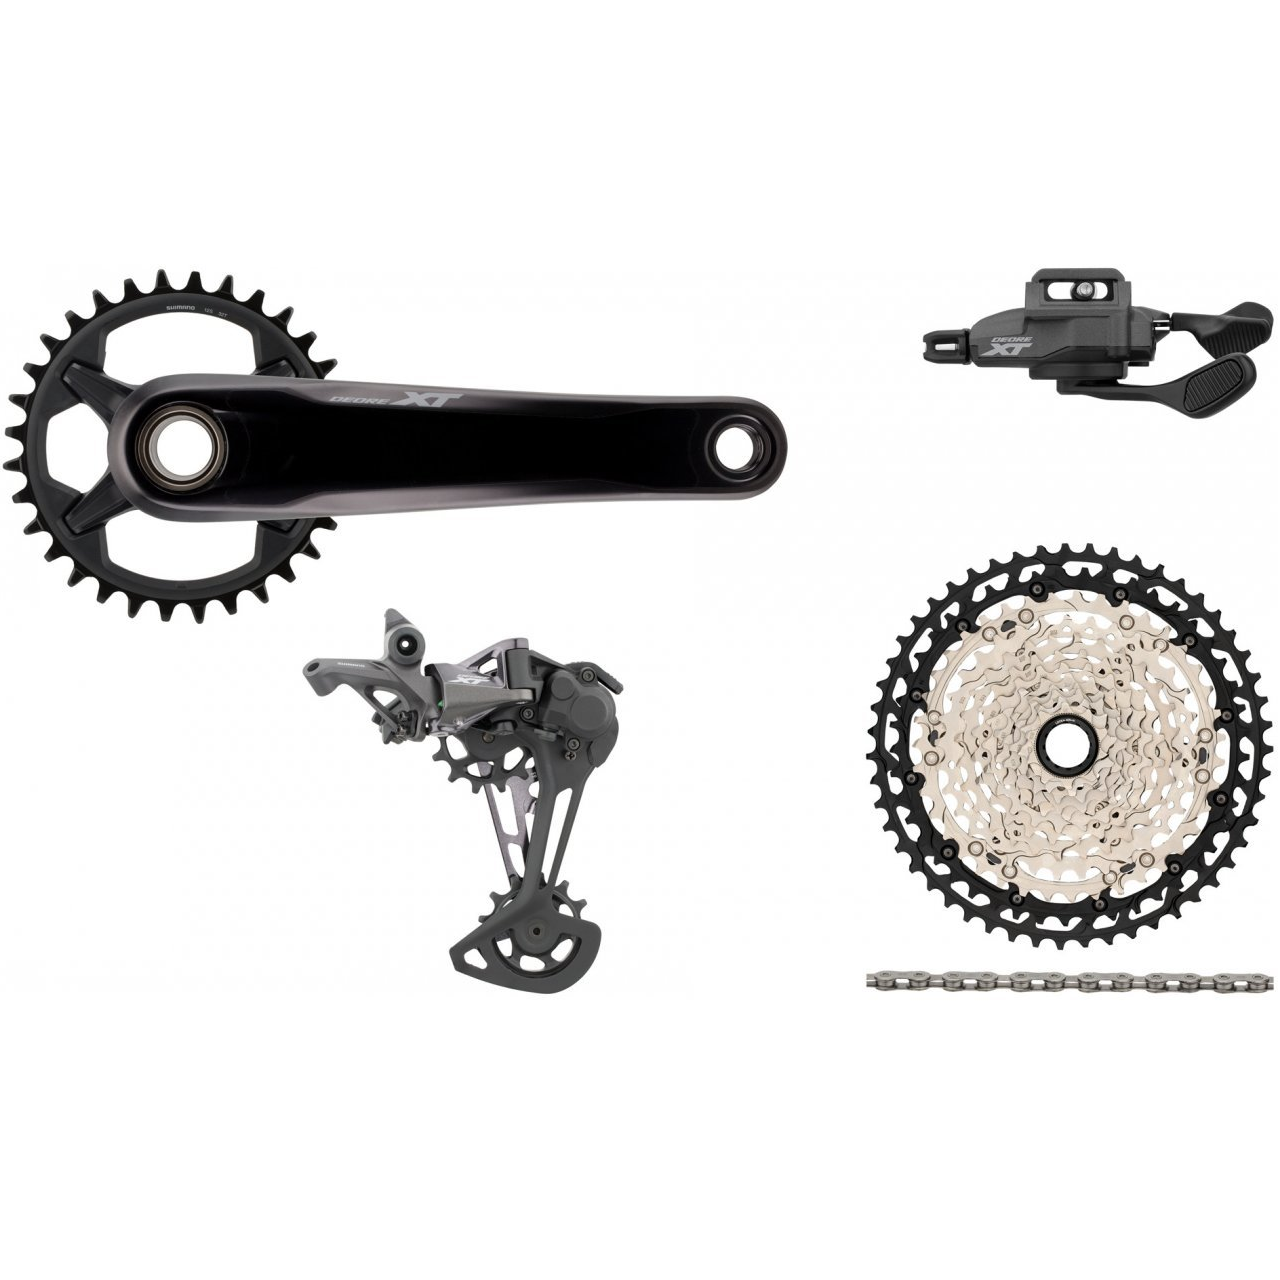 Shimano Components > Groupsets Shimano XT M8100 1 x 12 Drivetrain Groupset